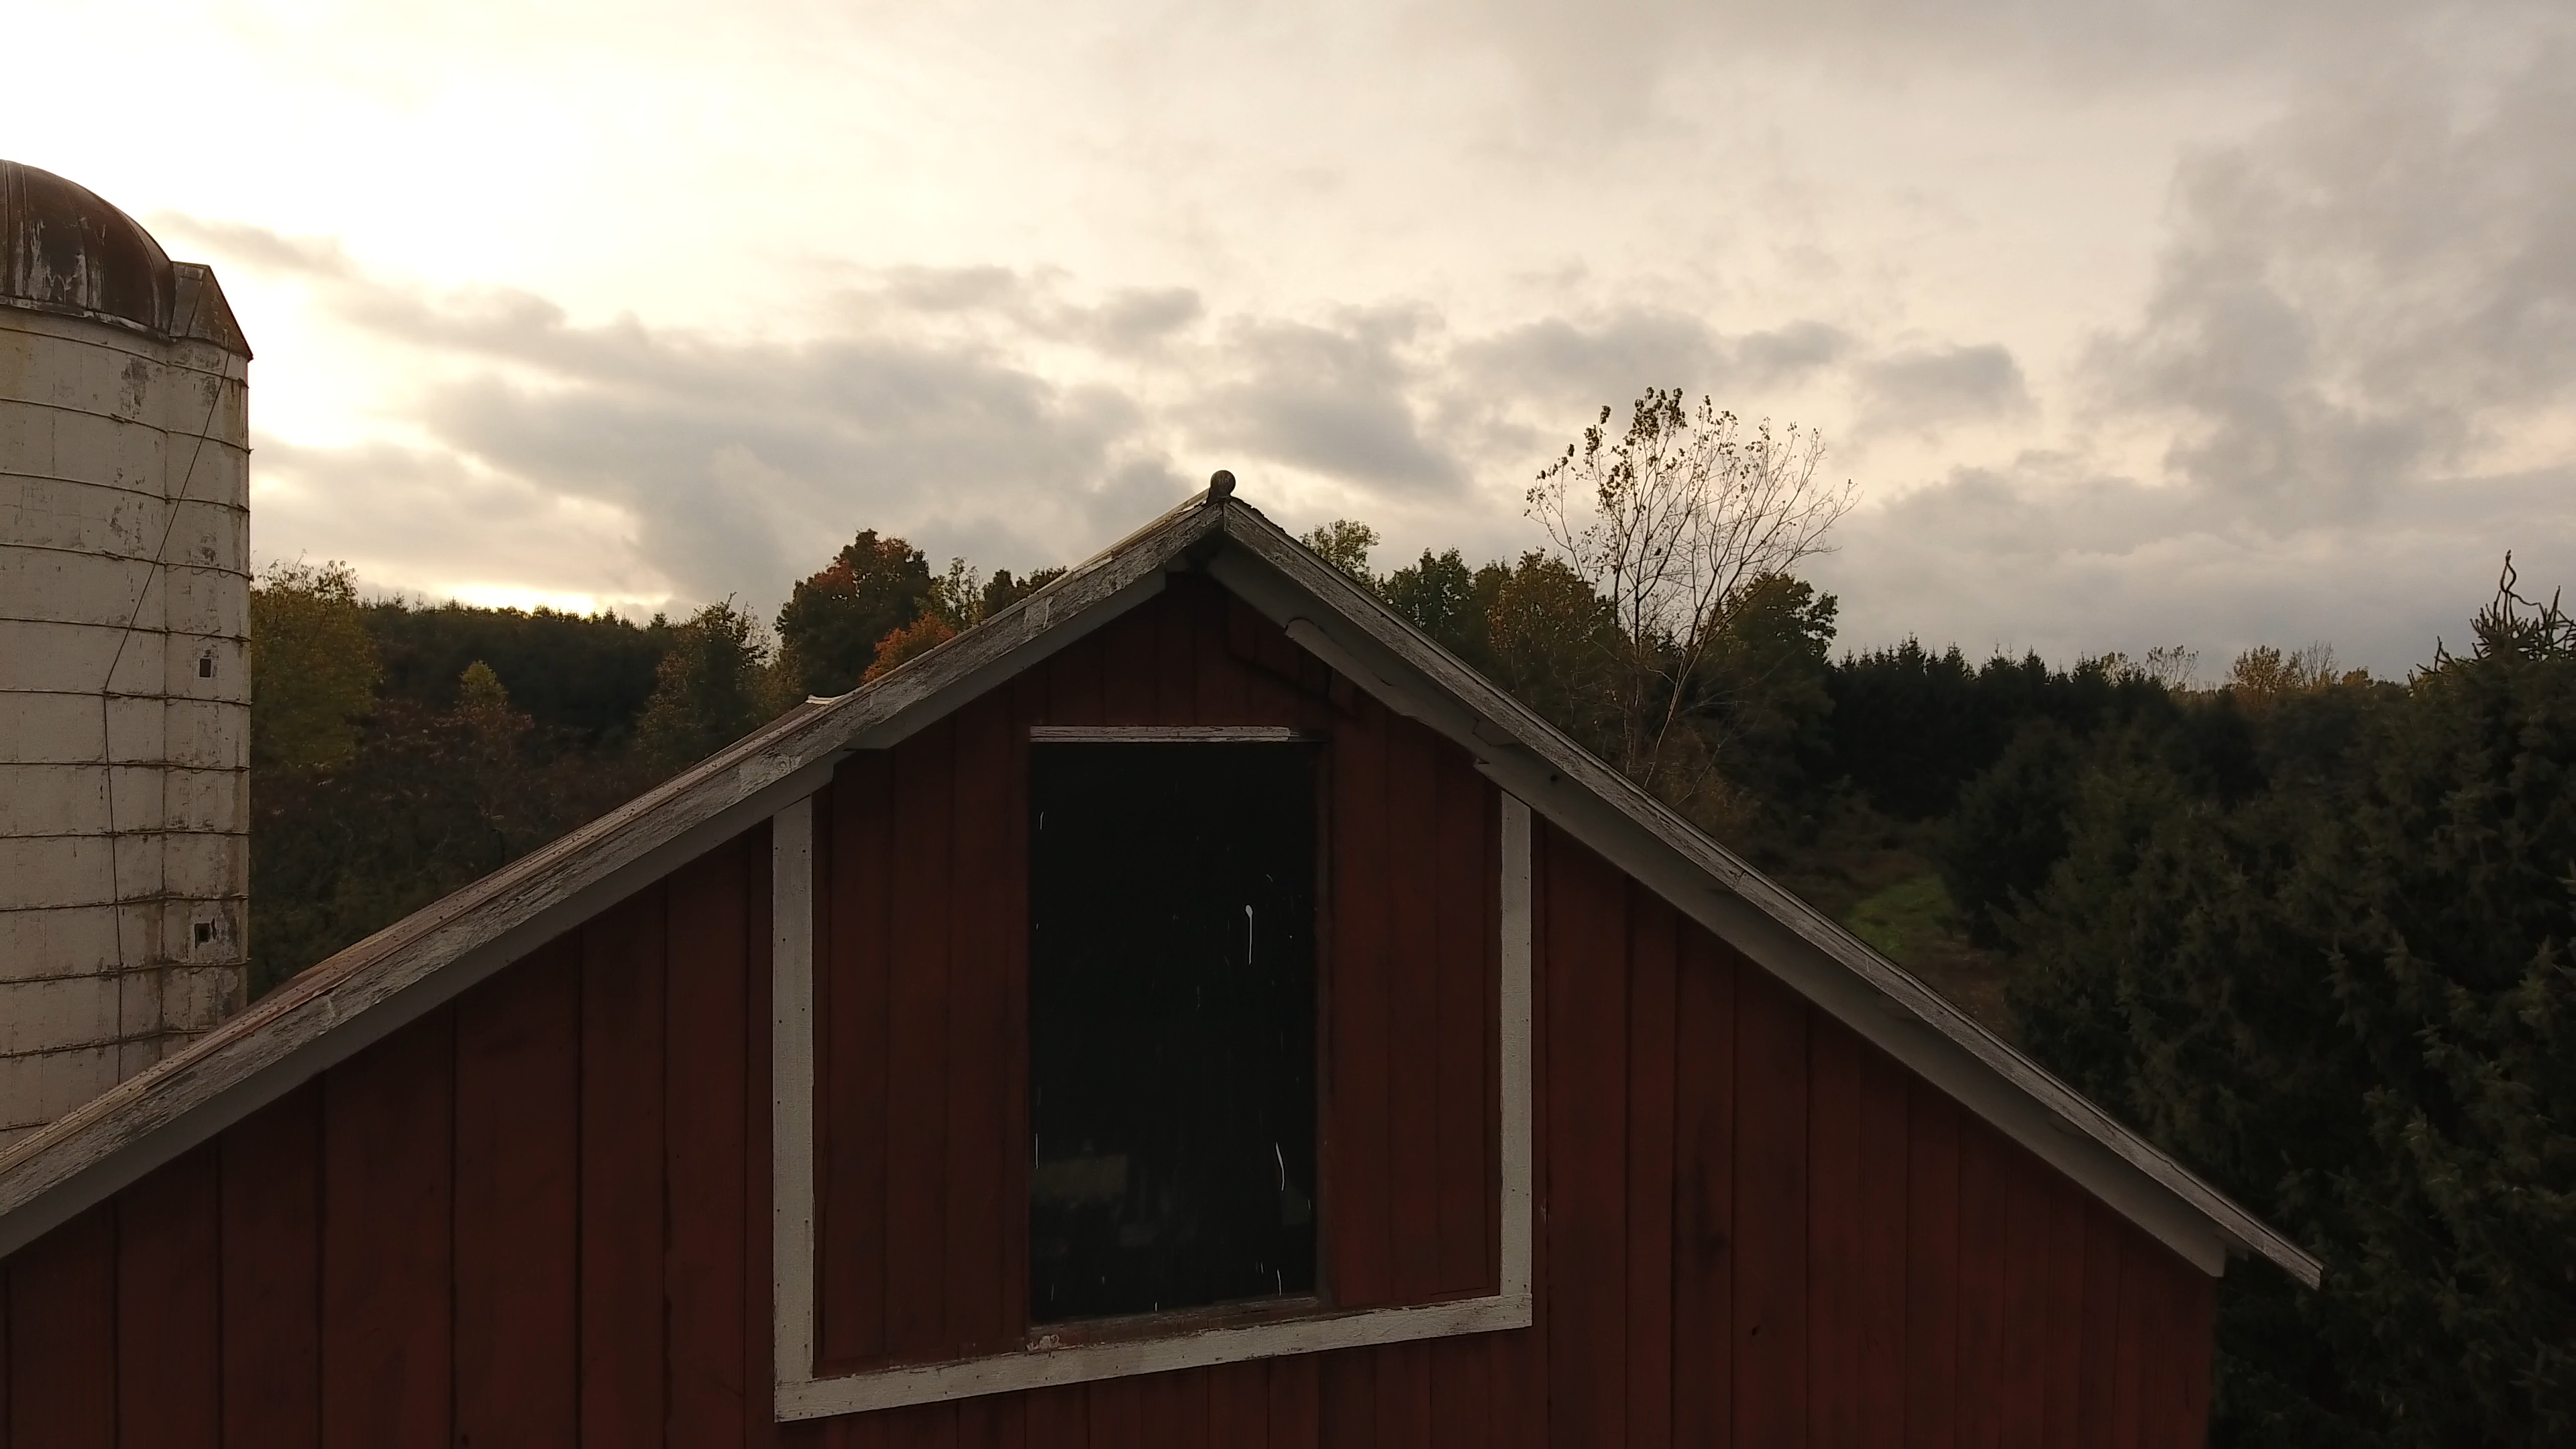 top of the barn and silo at sunset 10-20